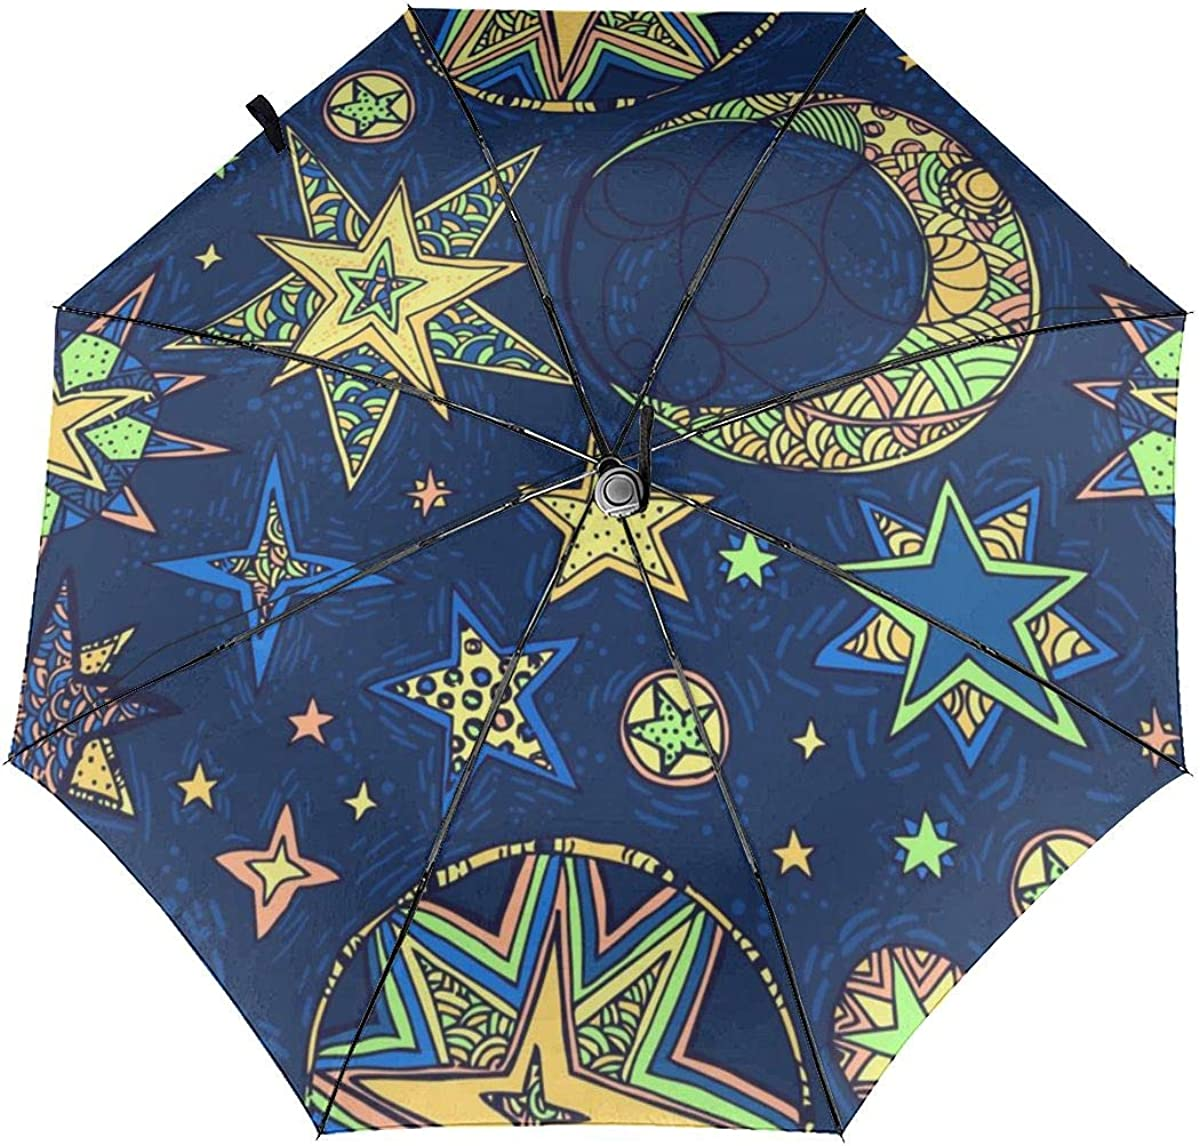 Fantasy Starry Sky Compact Travel Umbrella Windproof Reinforced Canopy 8 Ribs Umbrella Auto Open And Close Button Customized